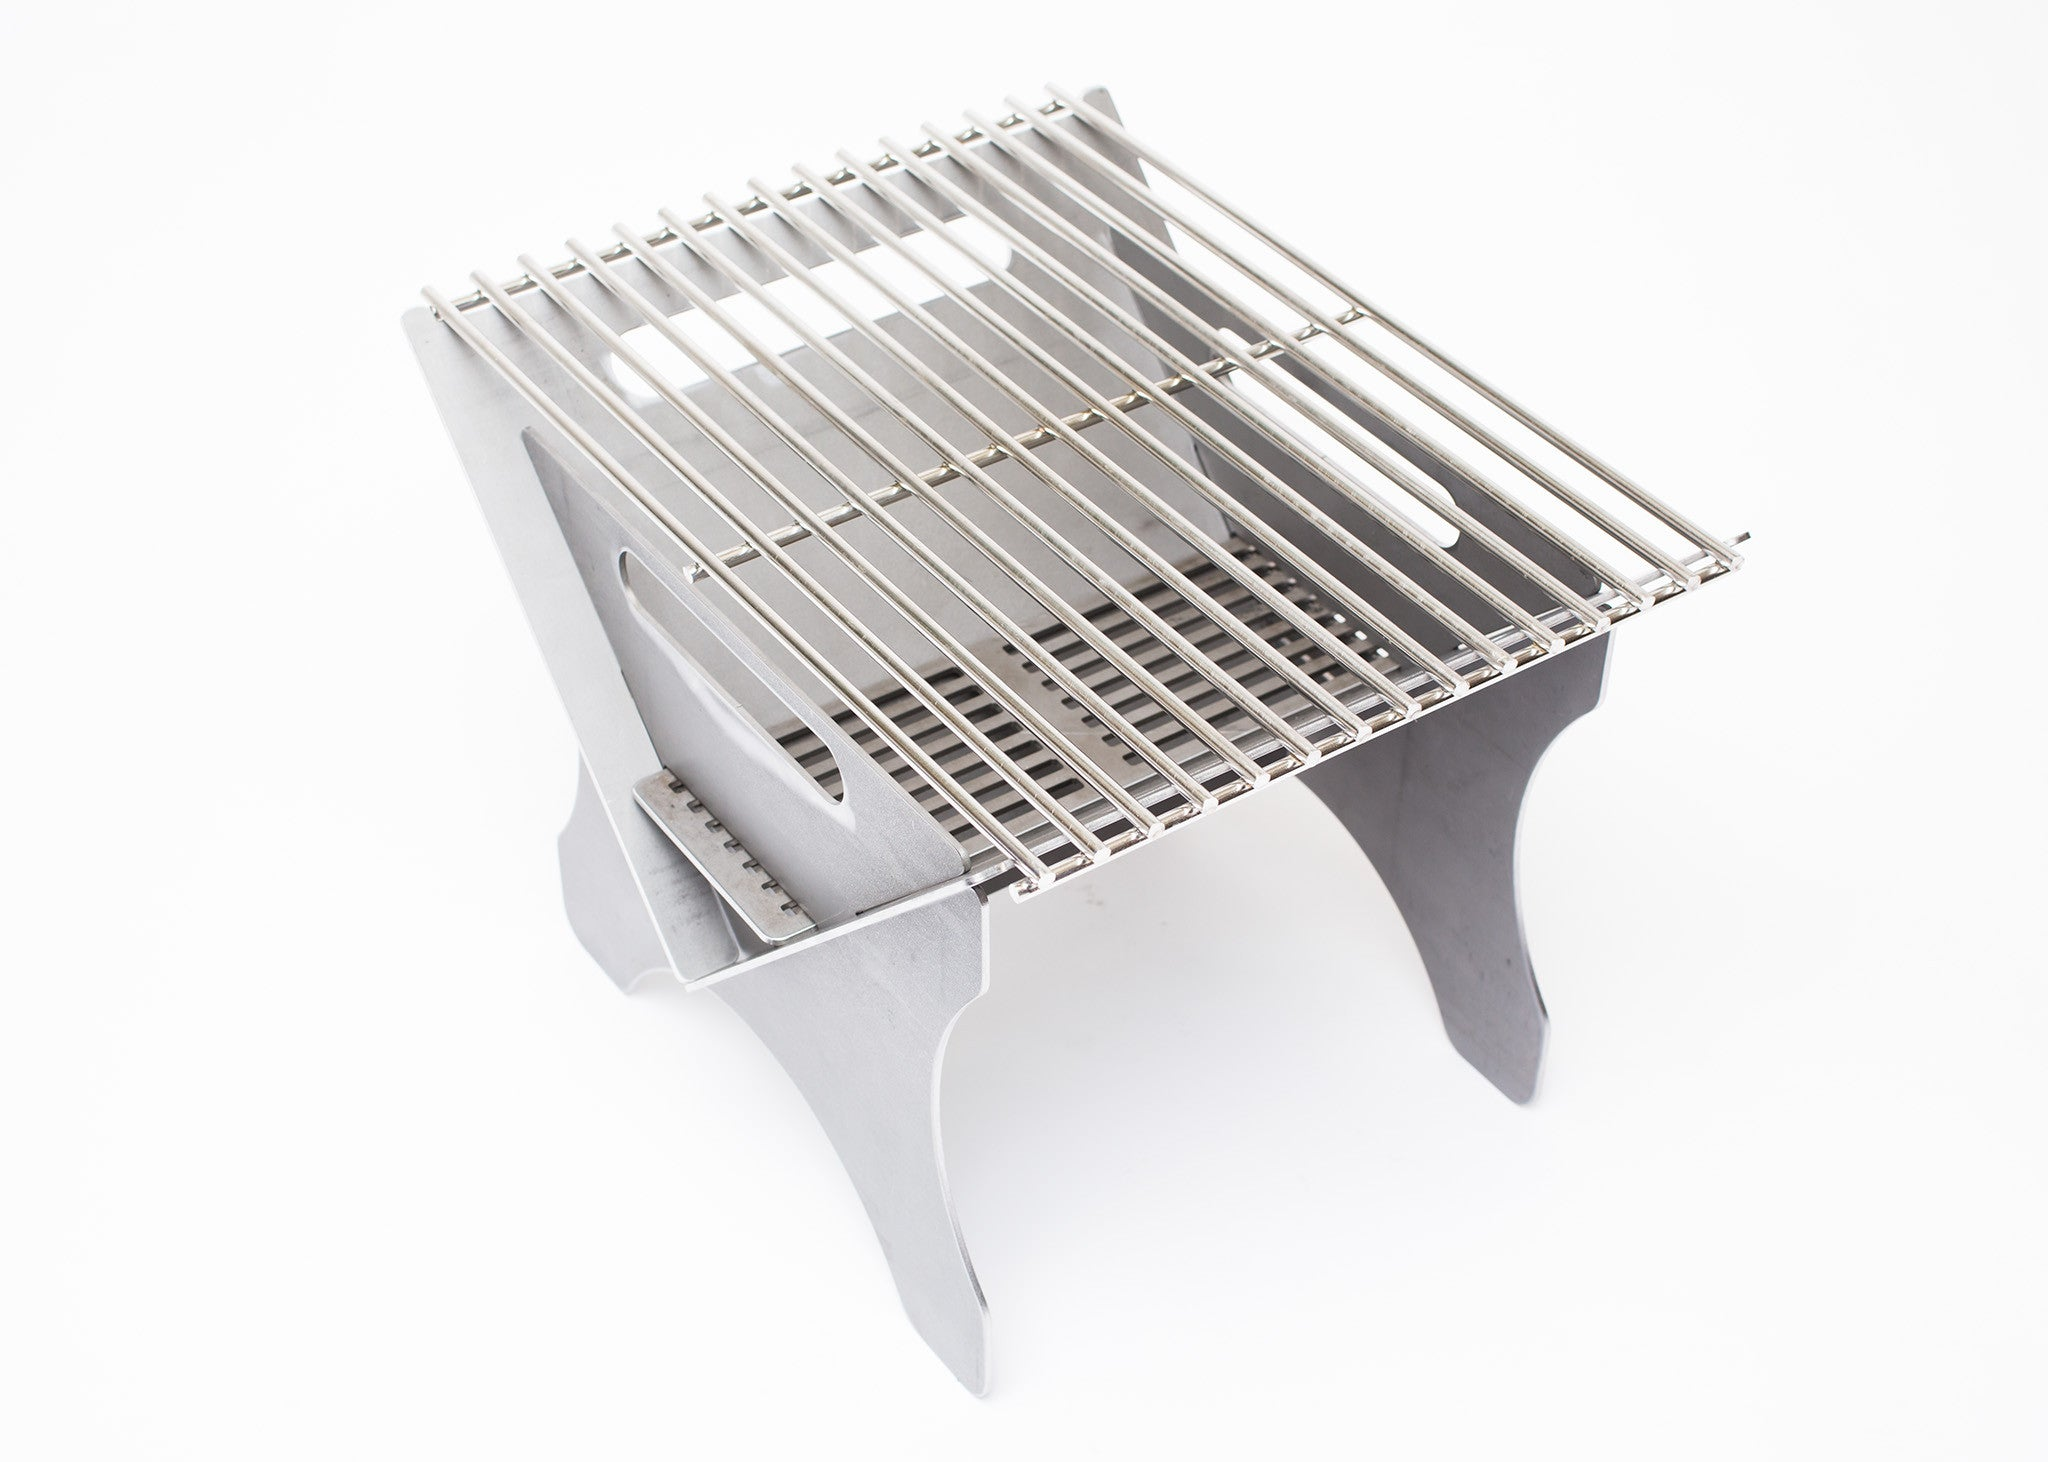 Stainless Steel Universal Cooking Grid